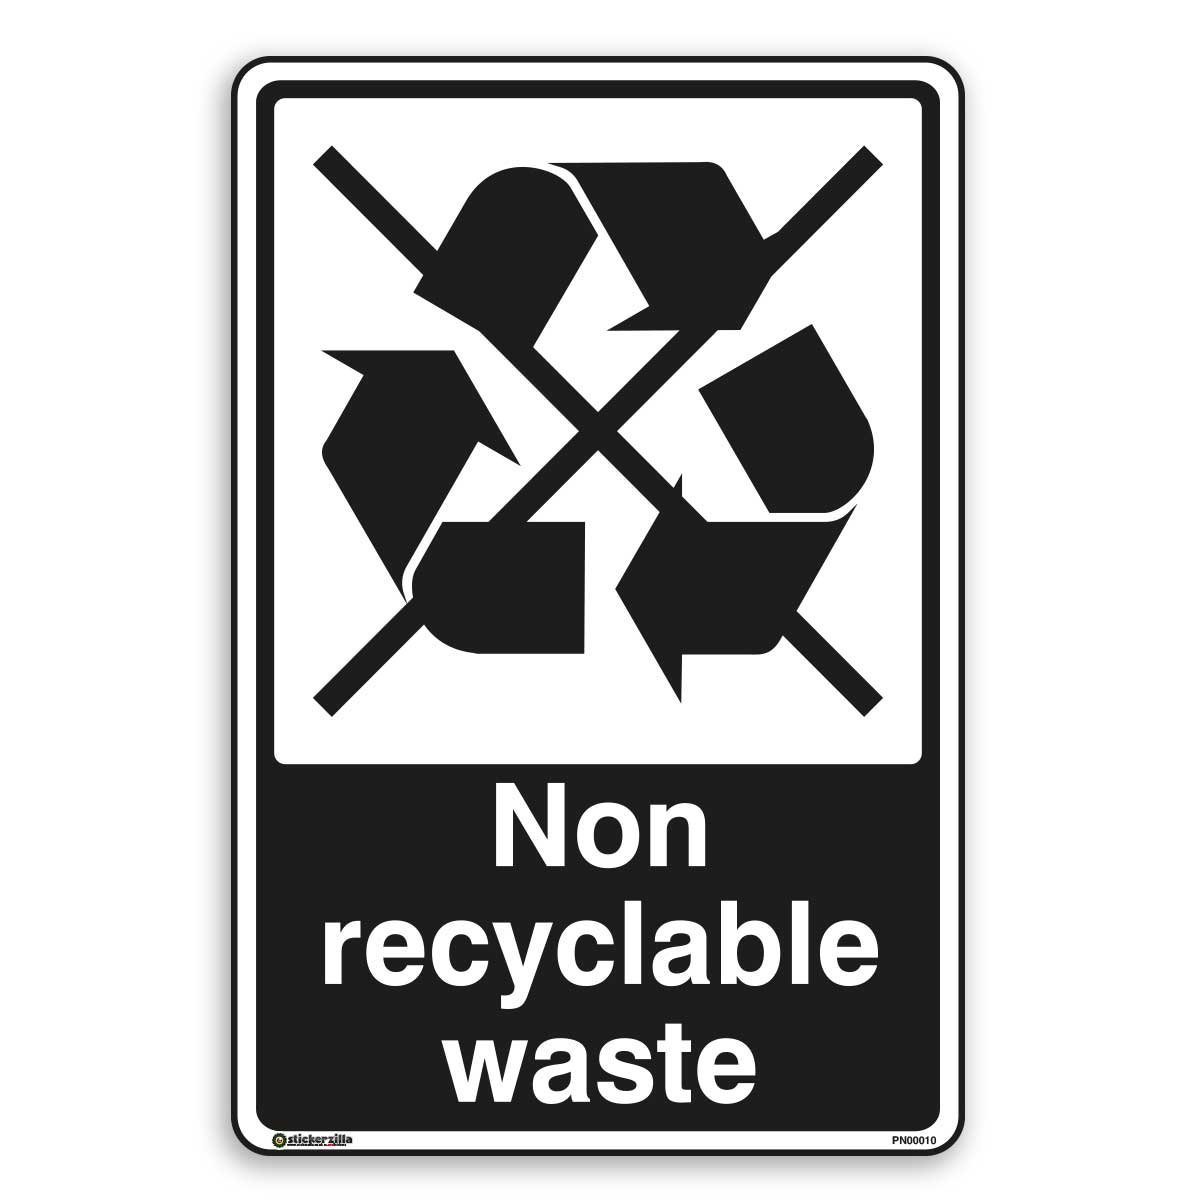 Non Recycling Waste - Recycling Sign - Self Adhesive Sticker (A3 - 297mm x 420mm) Stickerzilla